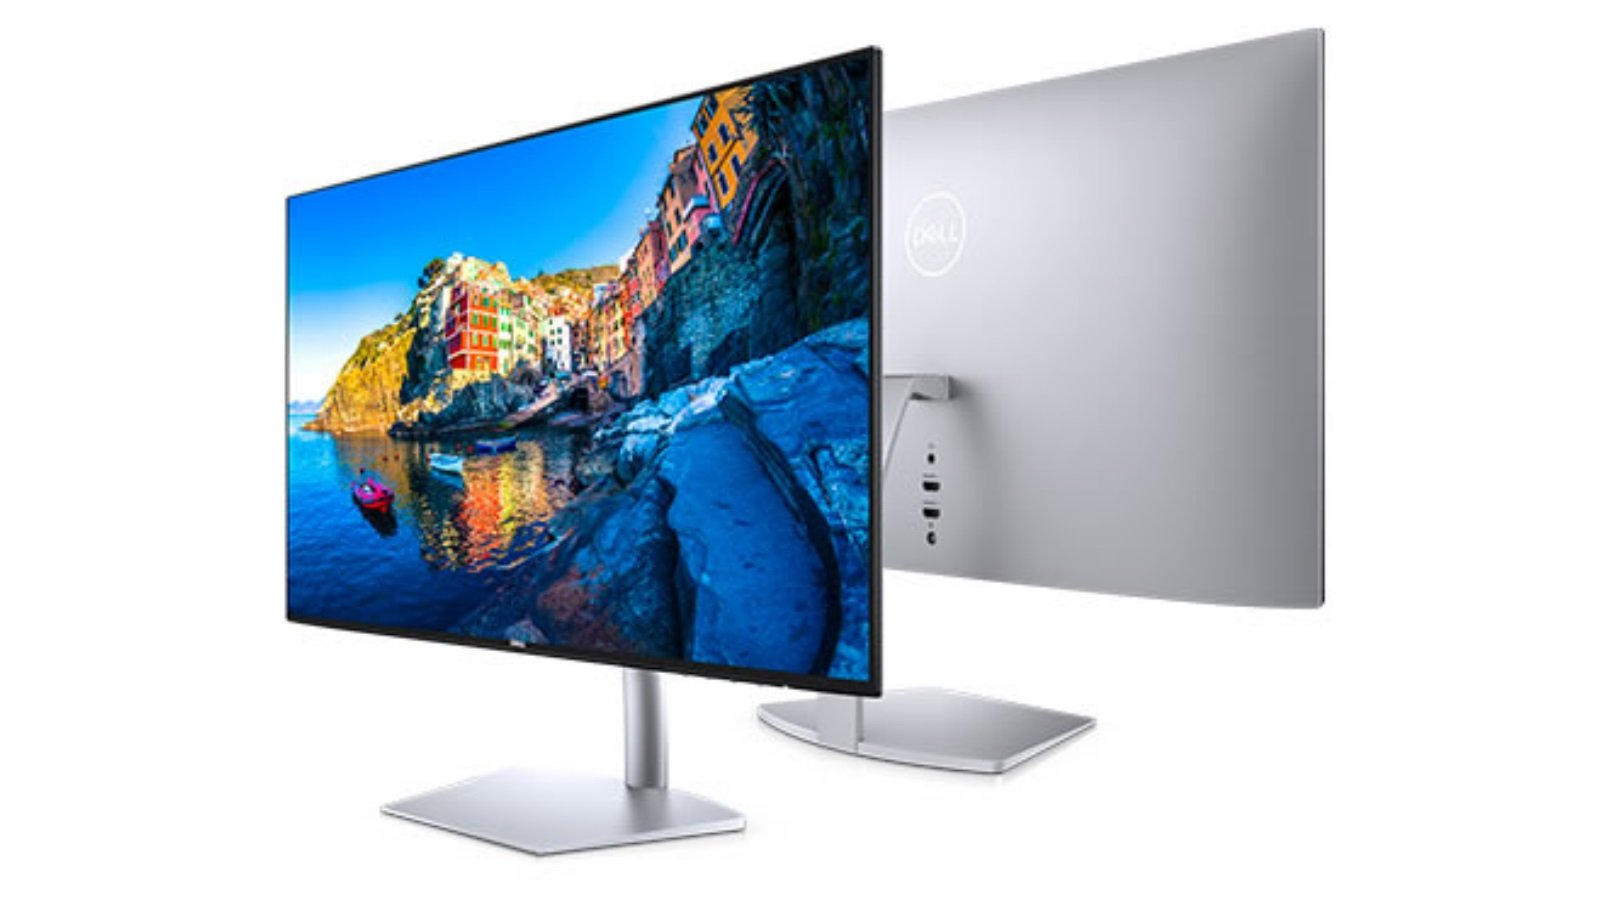 047d9d5a5b2 ... look no further than this ultra-thin offering from Dell. It s an  incredibly thin 24in screen